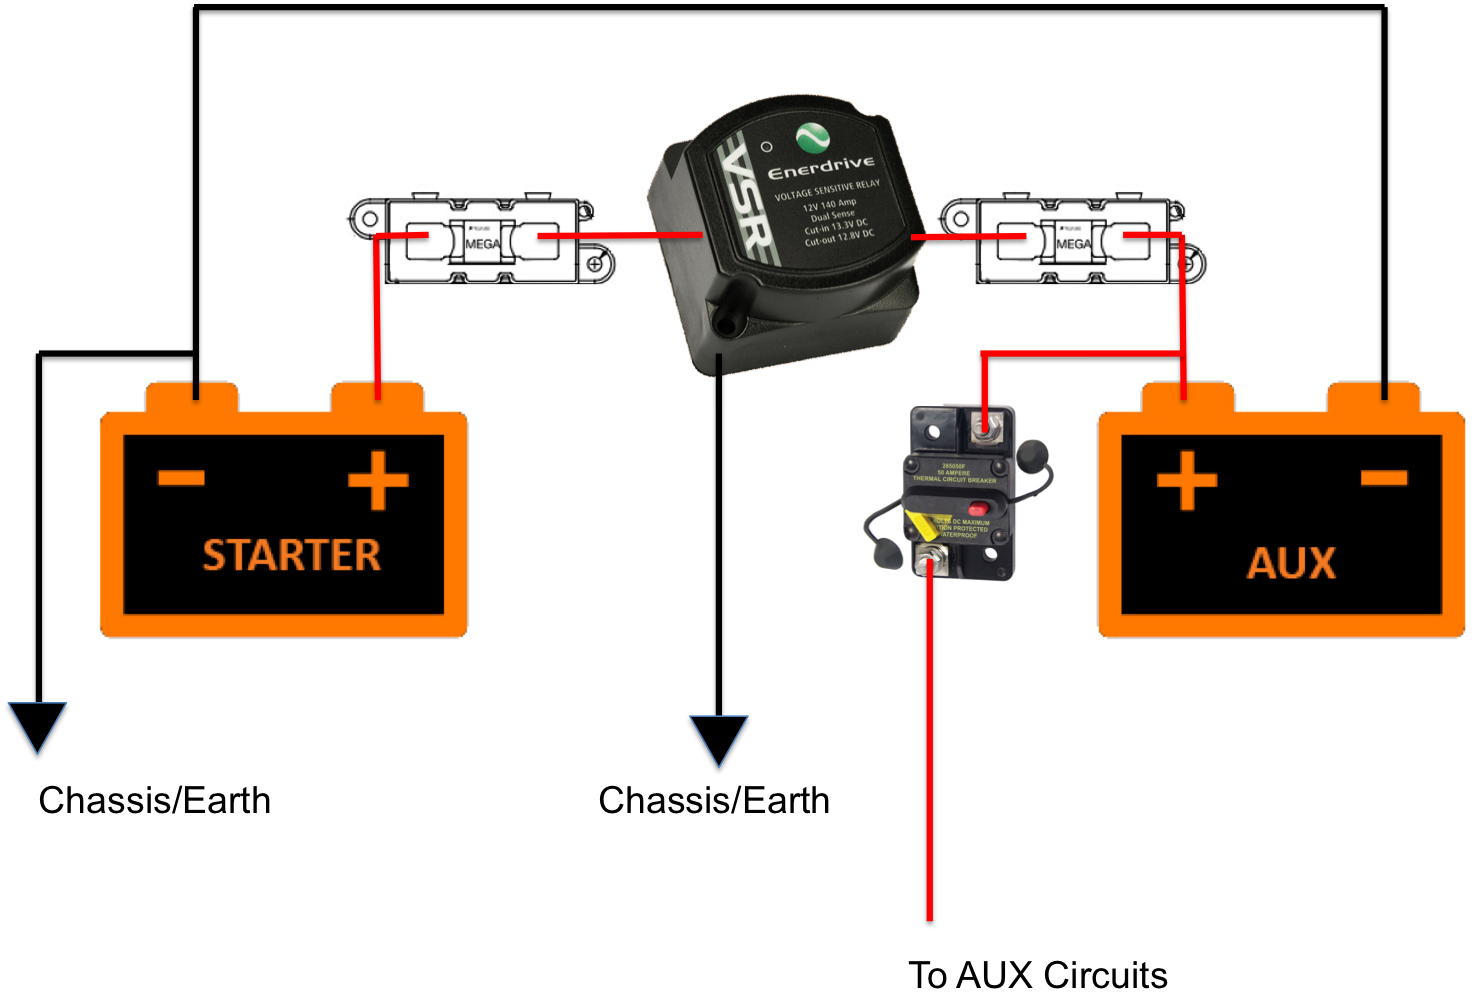 EnerderriveMegafuseBreaker install guides solid kit vsr wiring diagram at mifinder.co